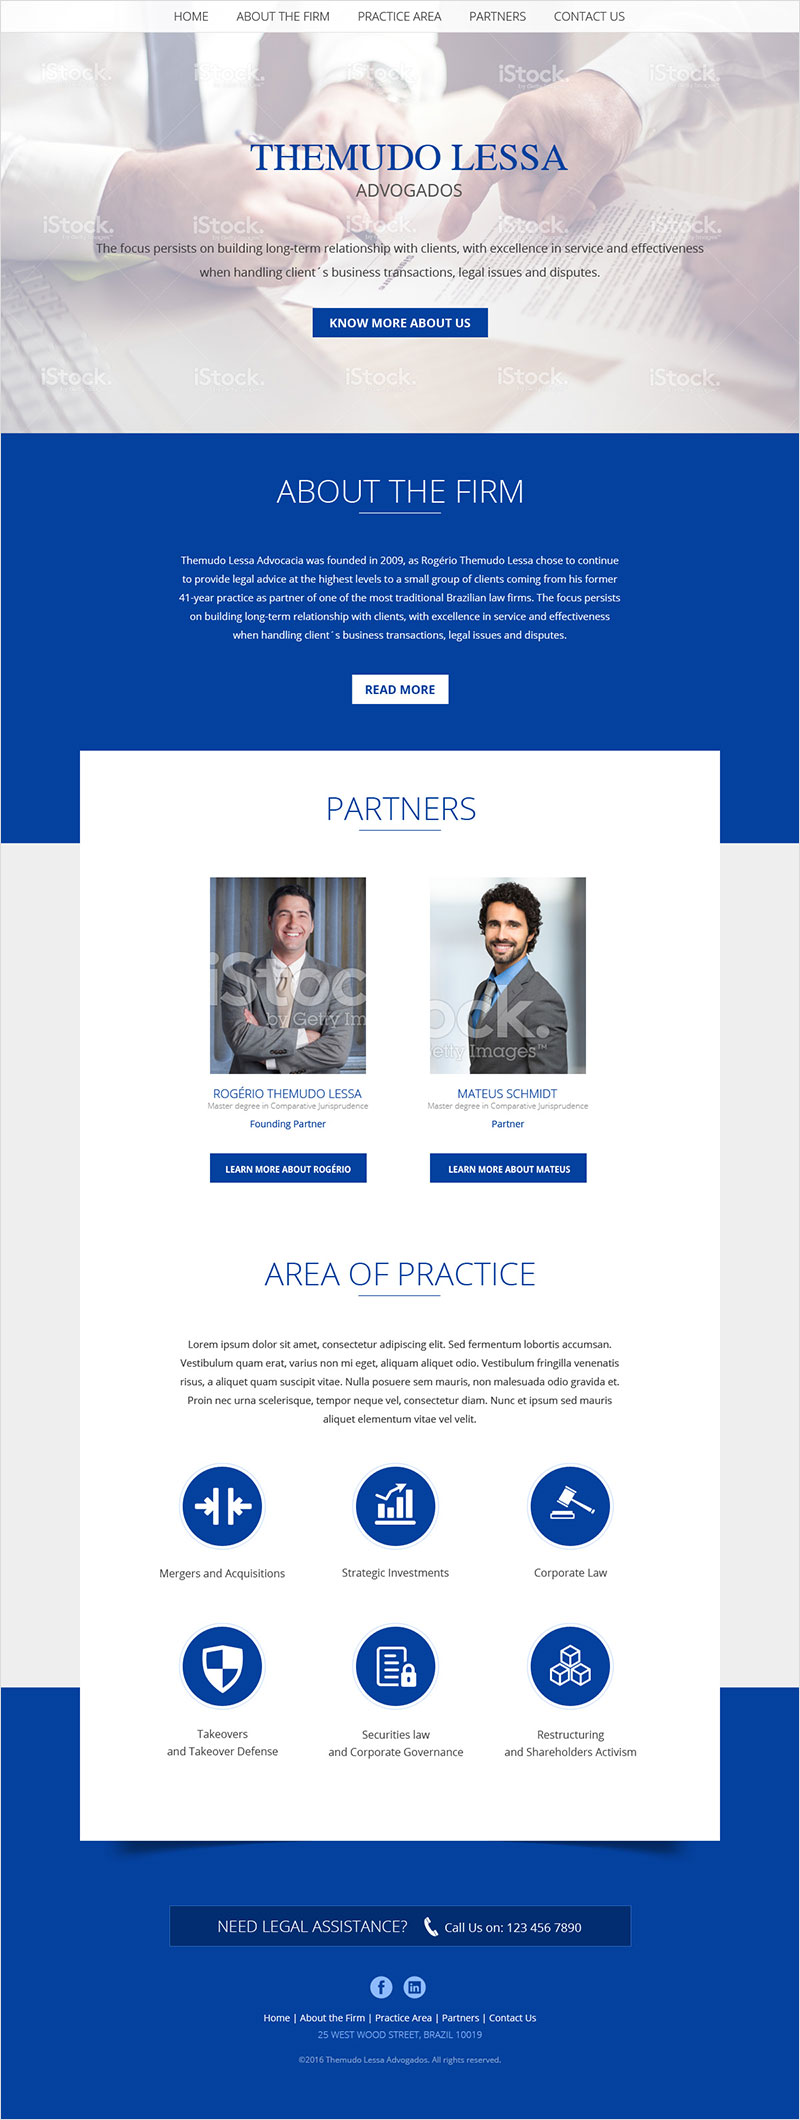 Themudo Lessa - Website Design